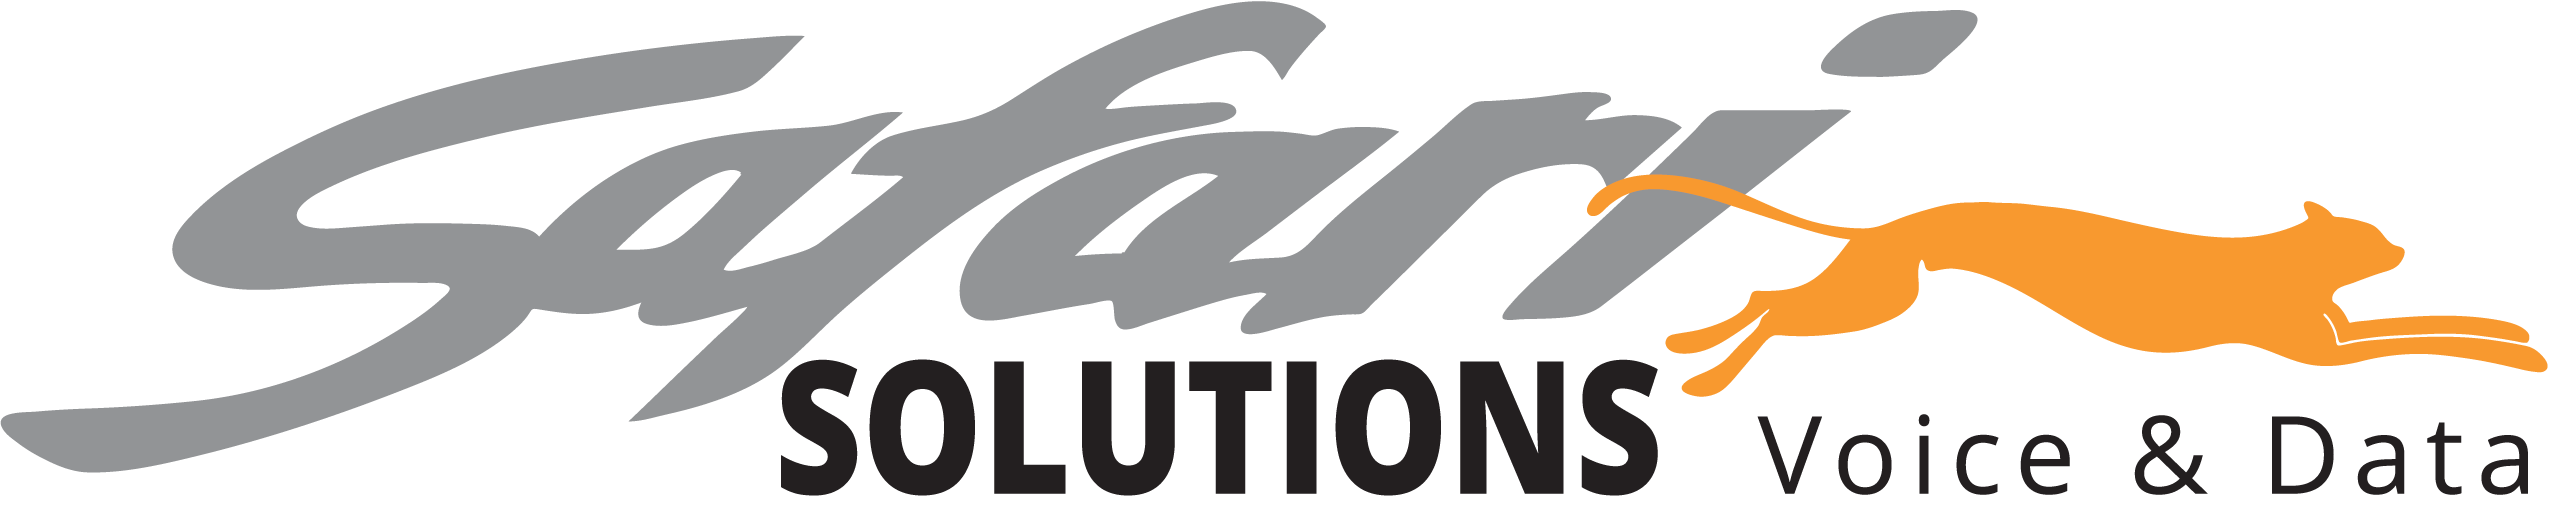 Safari-Solutions-Large-Logo